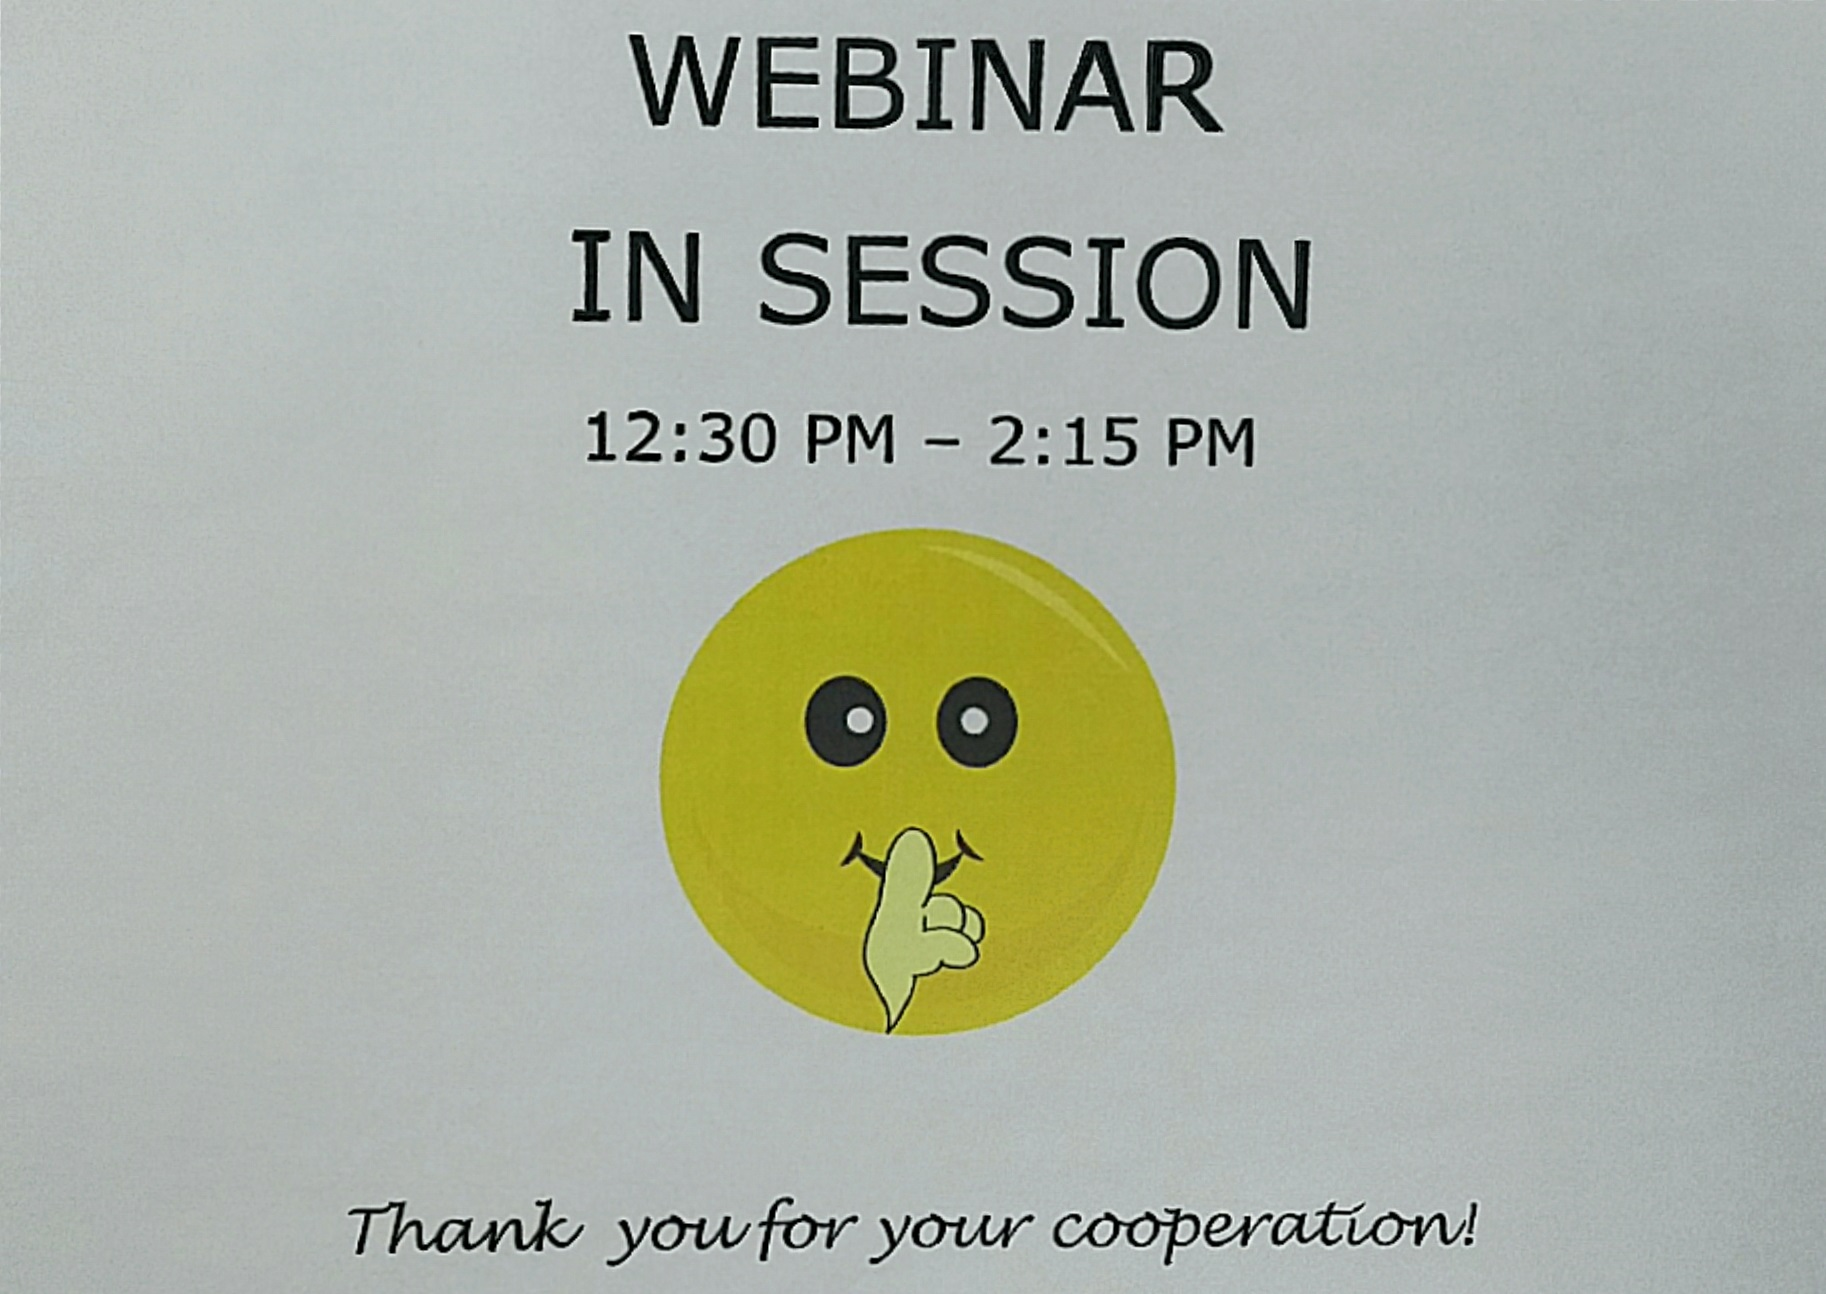 And now you know what the sign ITWC puts up during one of its webinars looks like.